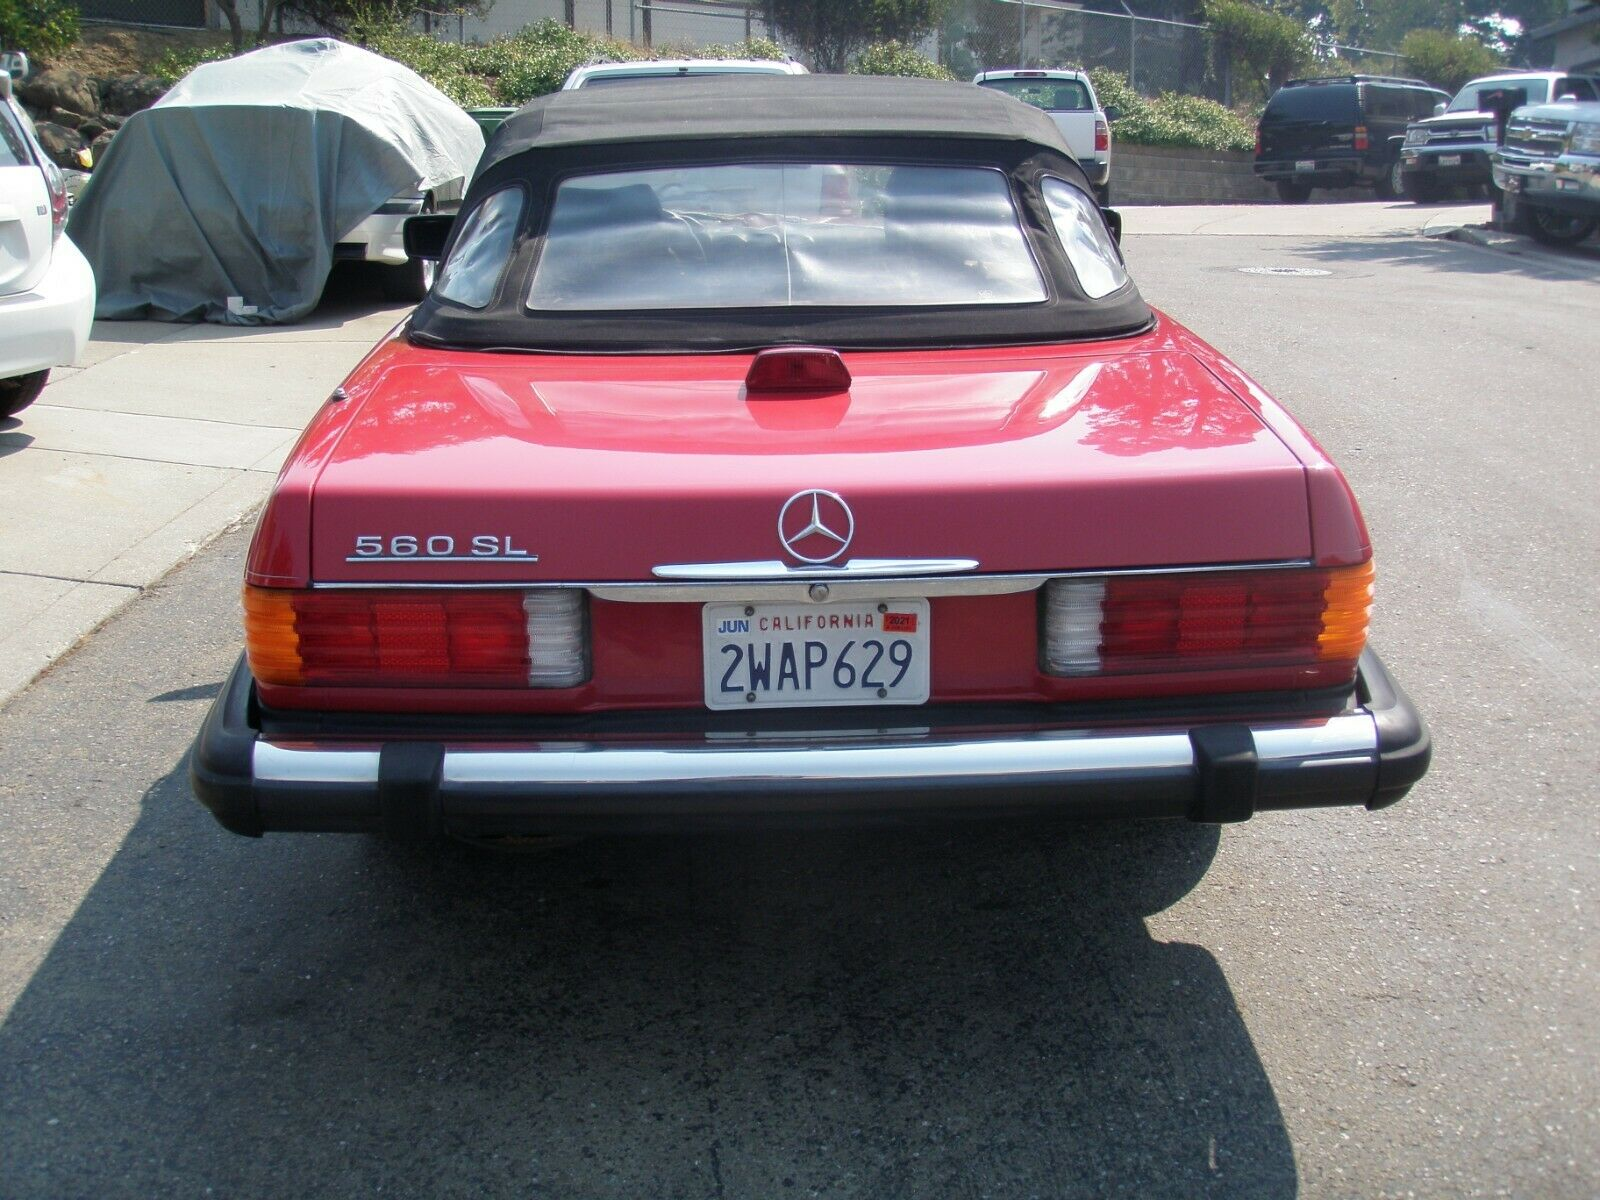 1986 Mercedes-Benz 560SL soft top rear